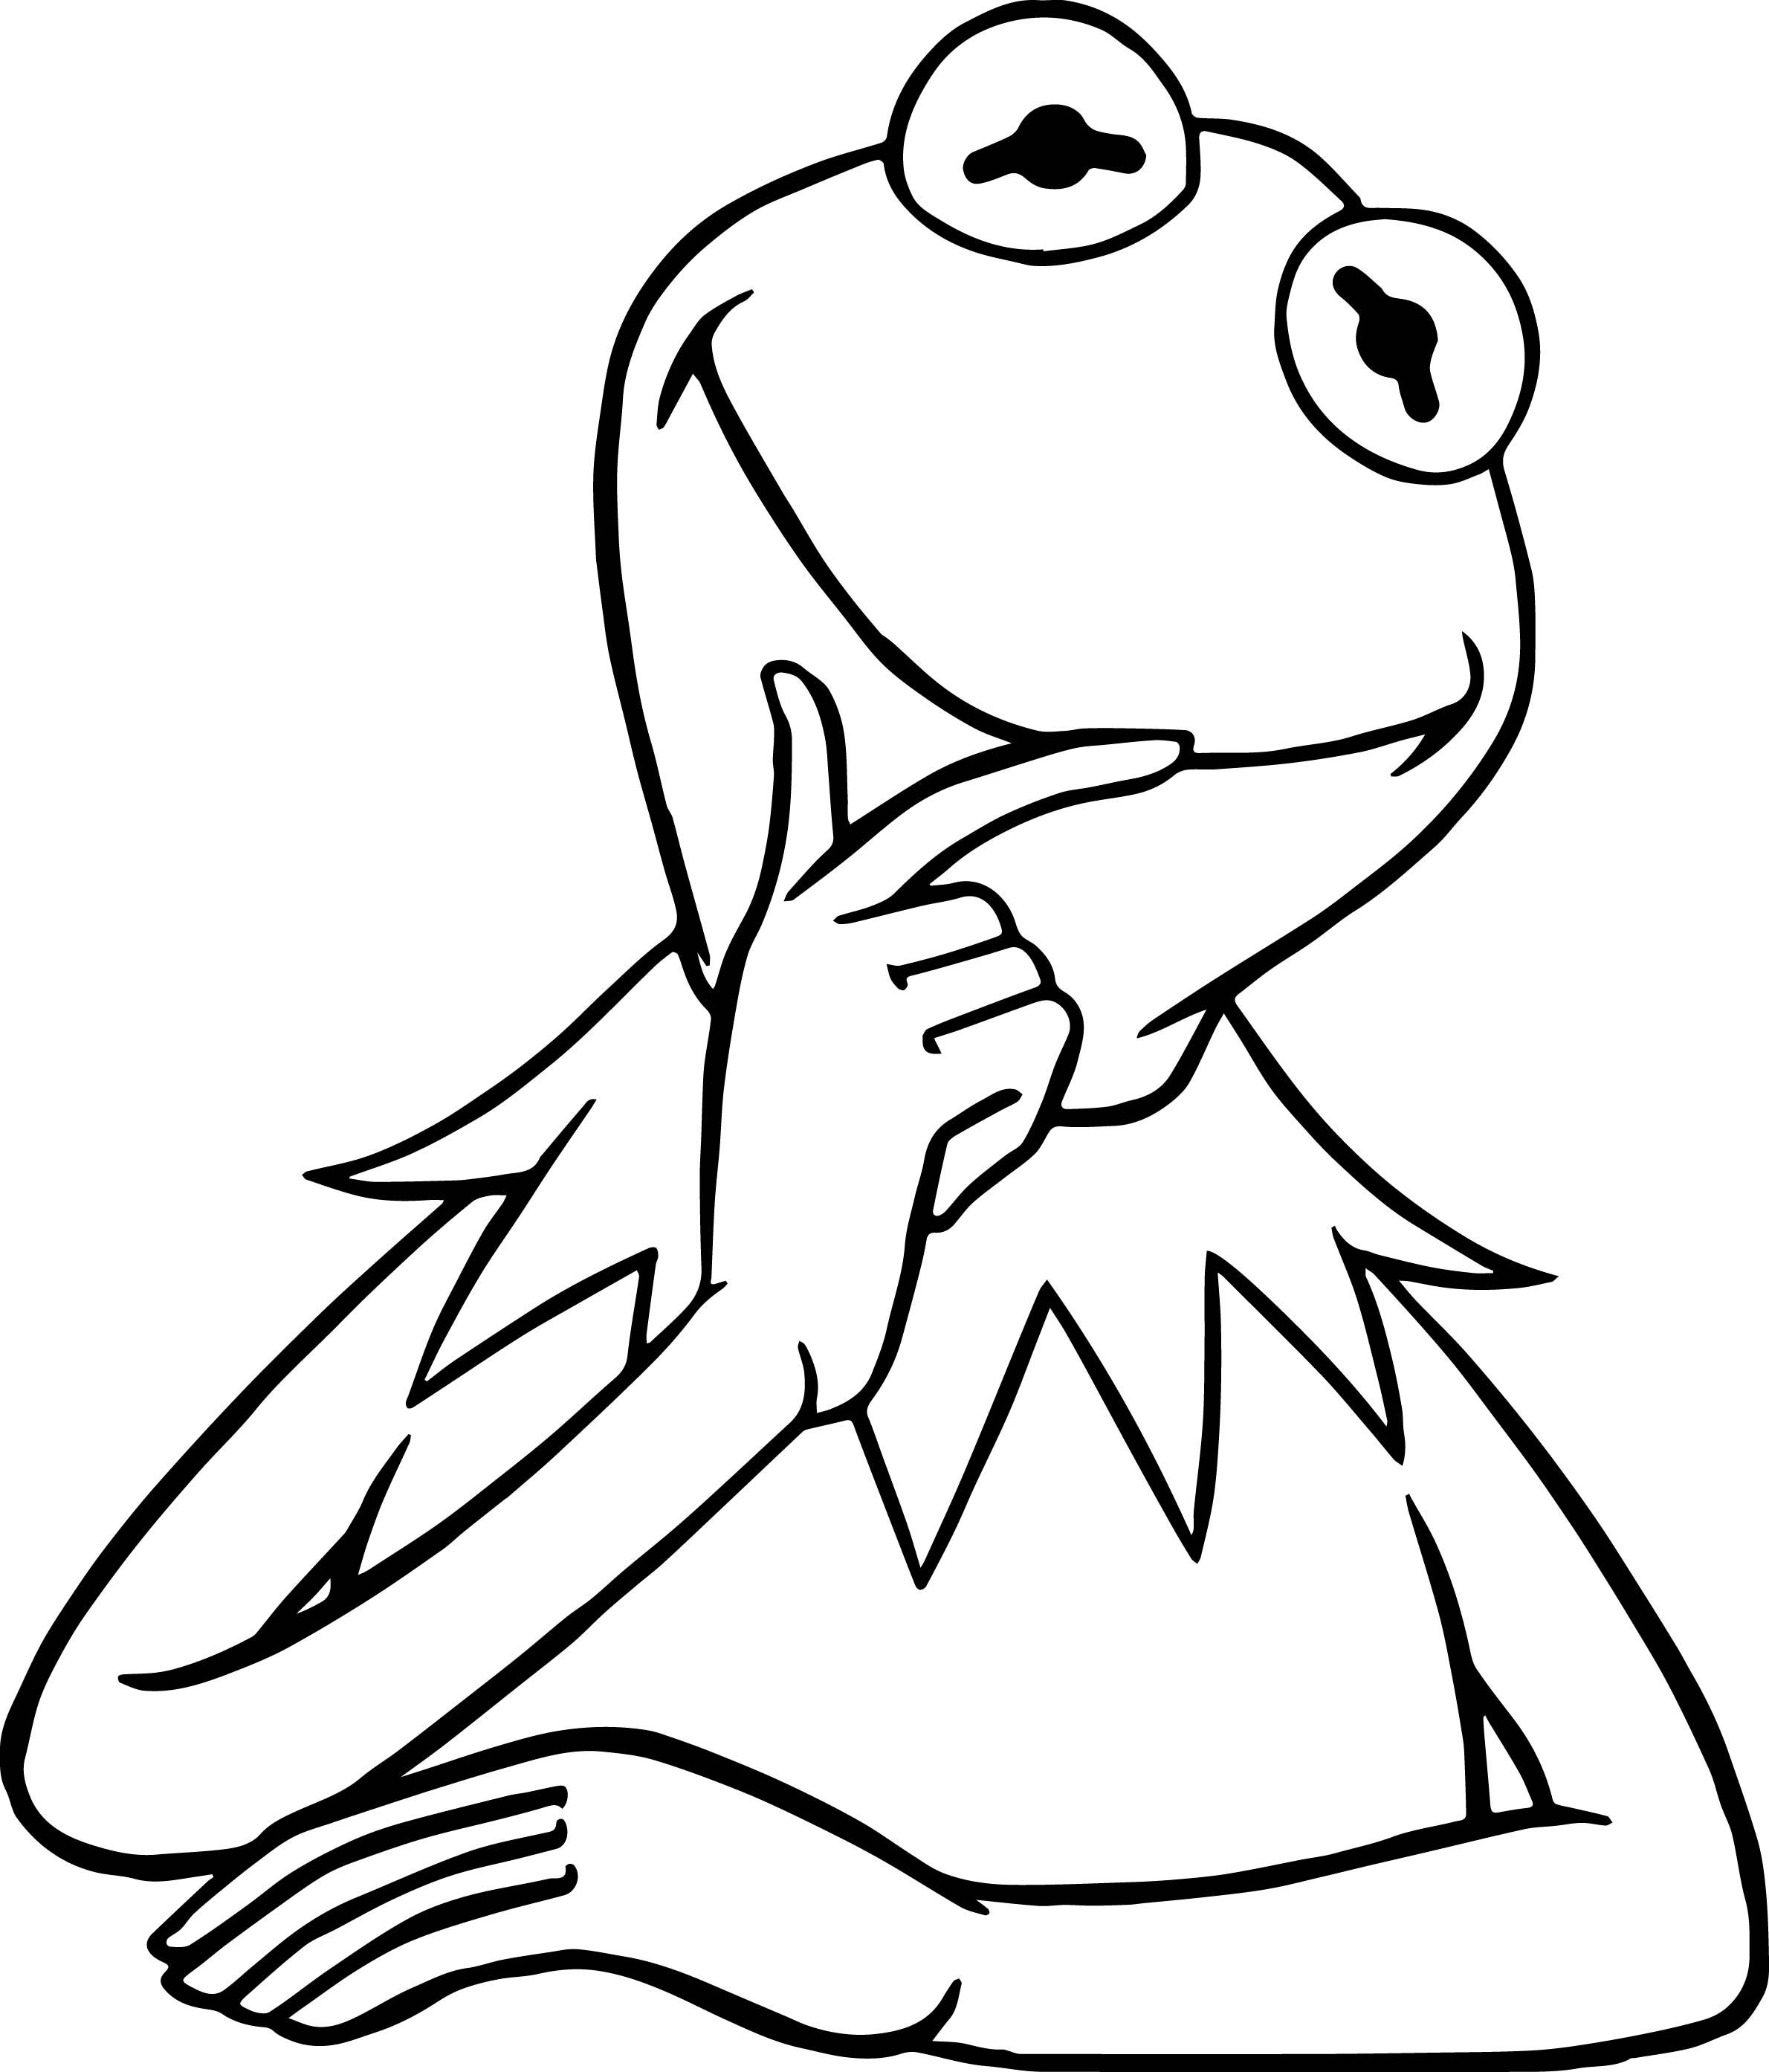 The Muppets Kermit The Frog Think Coloring Pages | Kermit